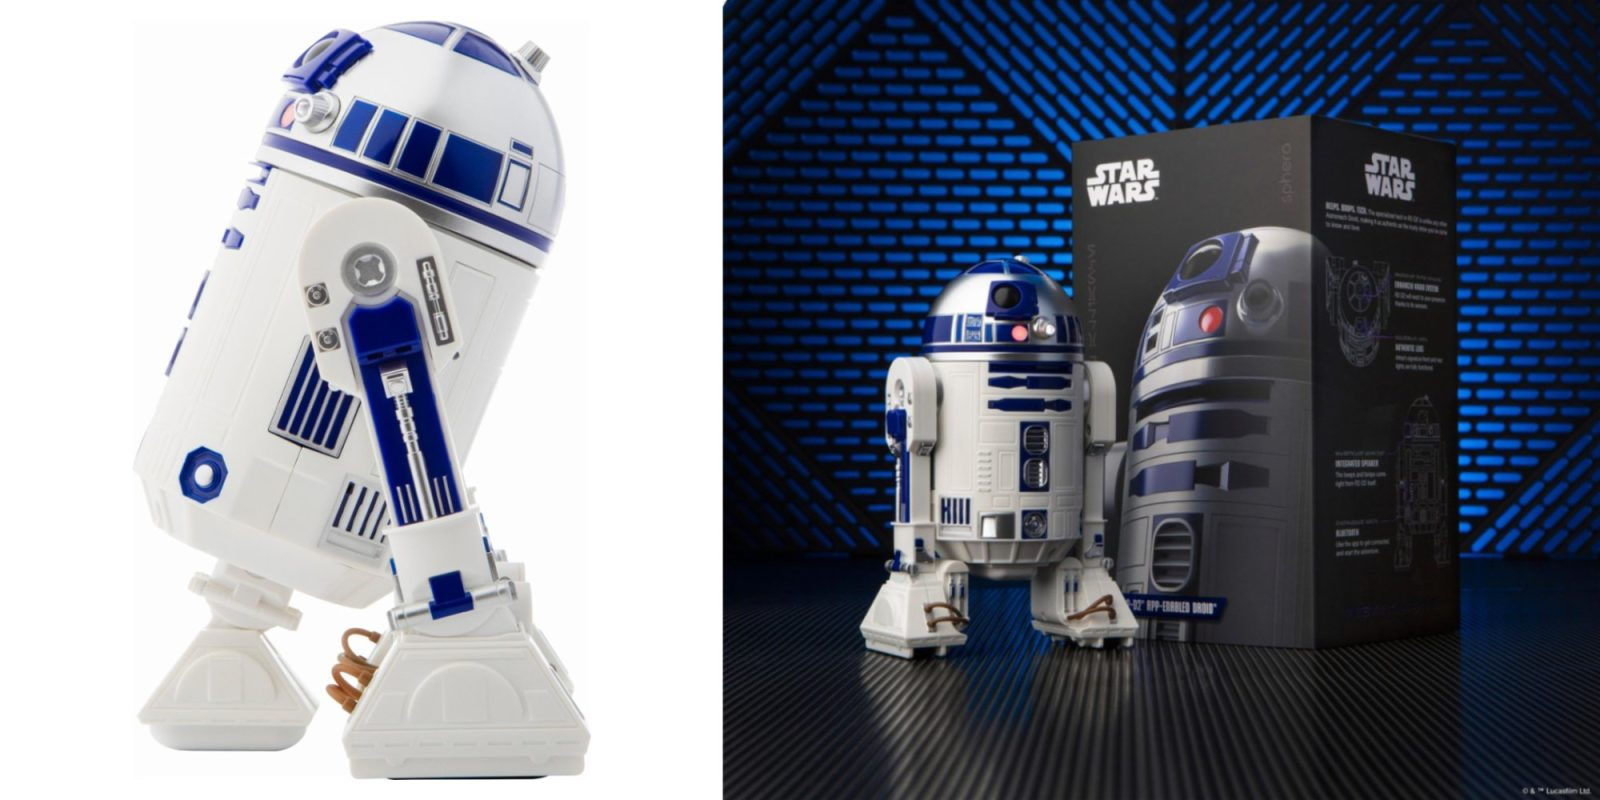 Sphero's app-enabled R2-D2 drops to a new low of $36 at Amazon and Kohl's